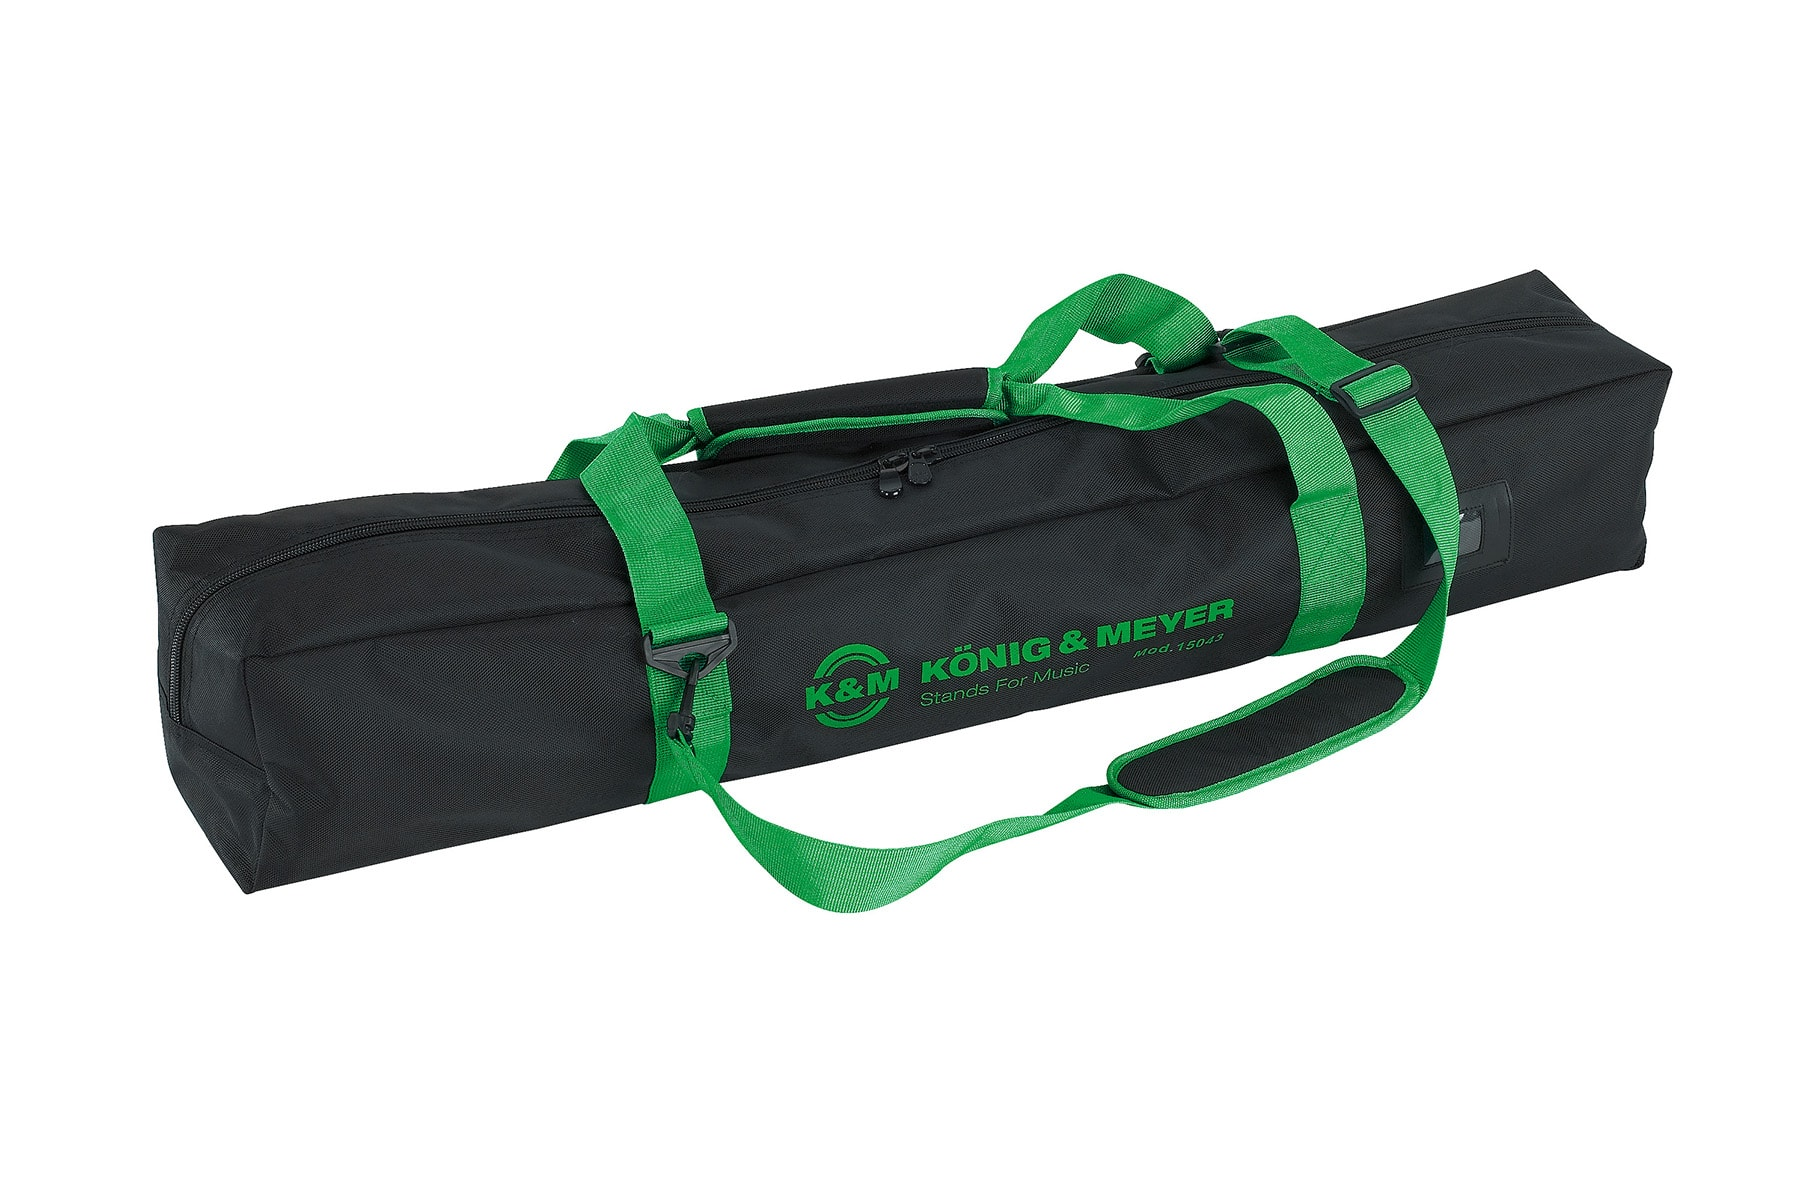 KM15043 - Universal carrying case